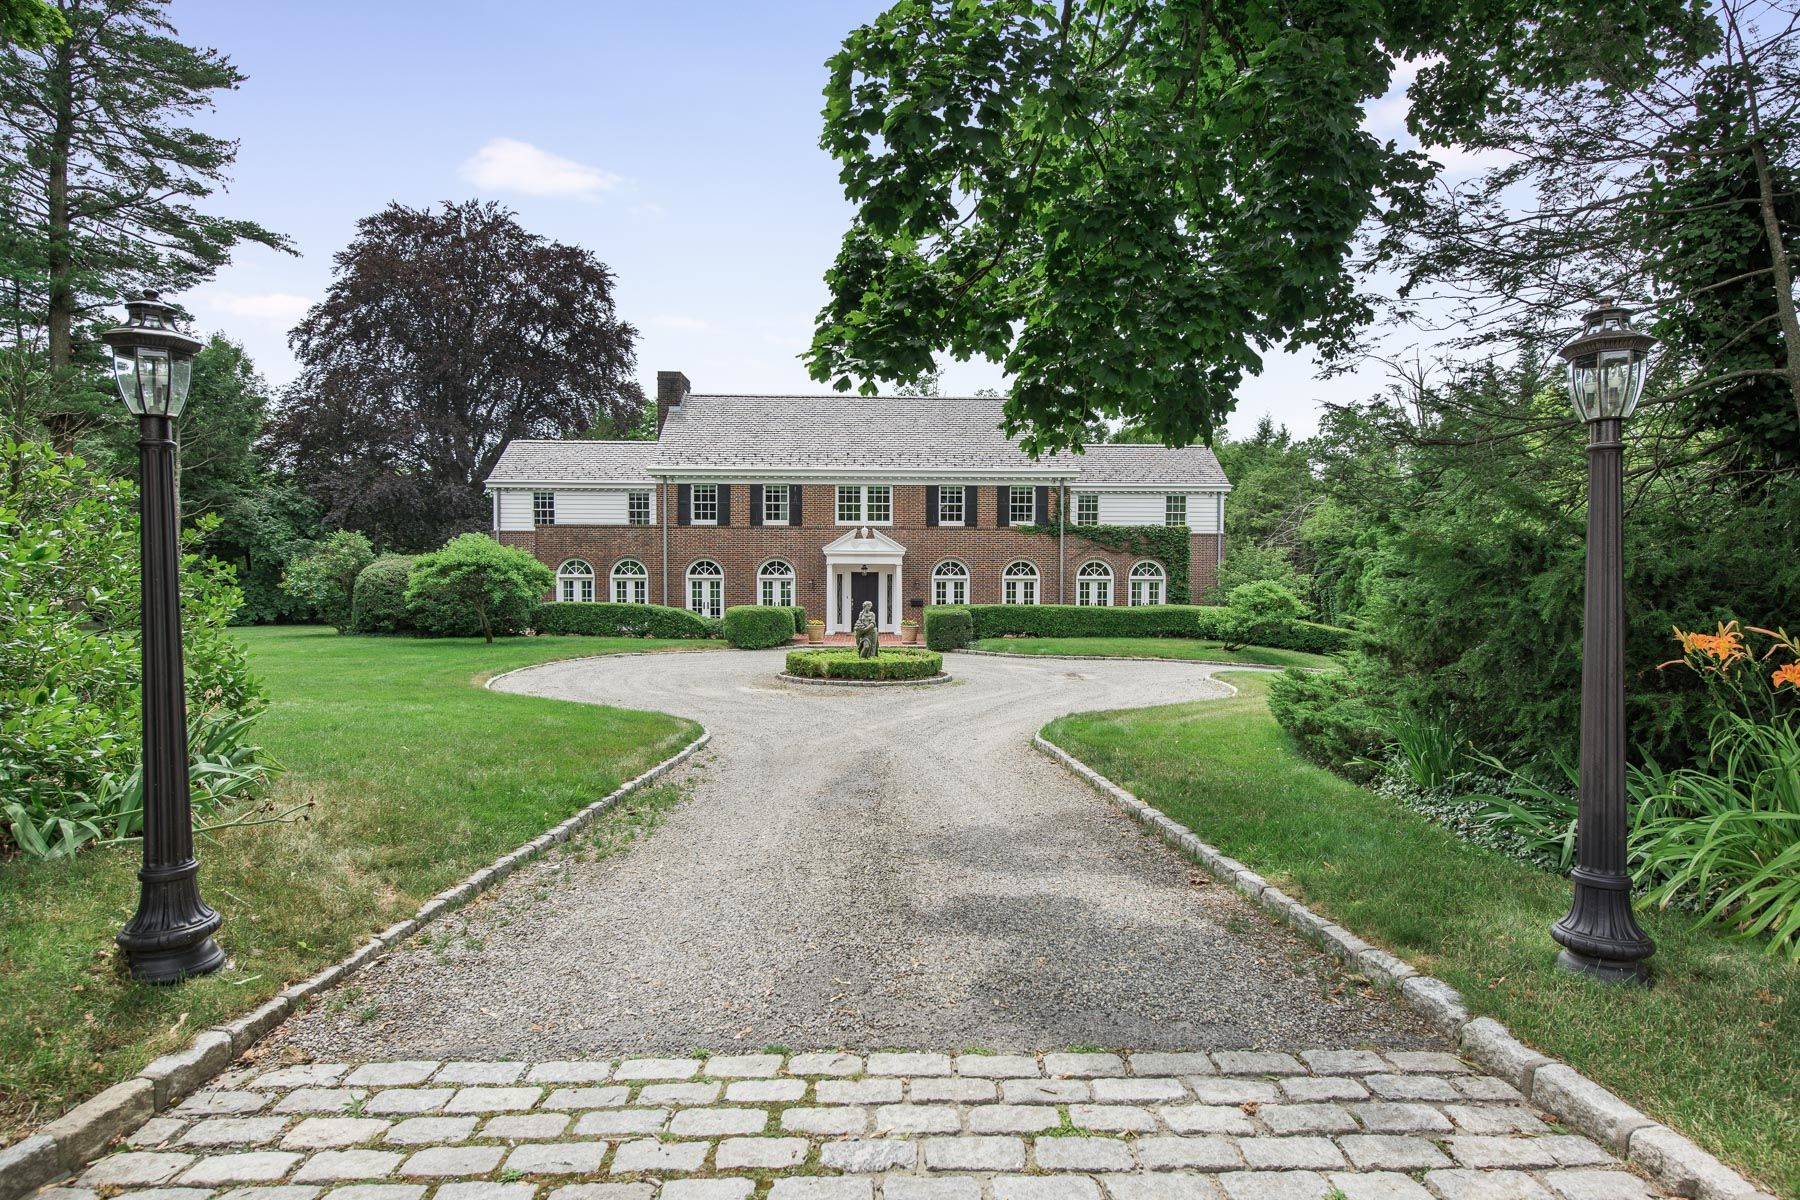 Single Family Homes for Sale at One of Scarsdale's Most Stunning Luxury Home 37 Morris Lane Scarsdale, New York 10583 United States